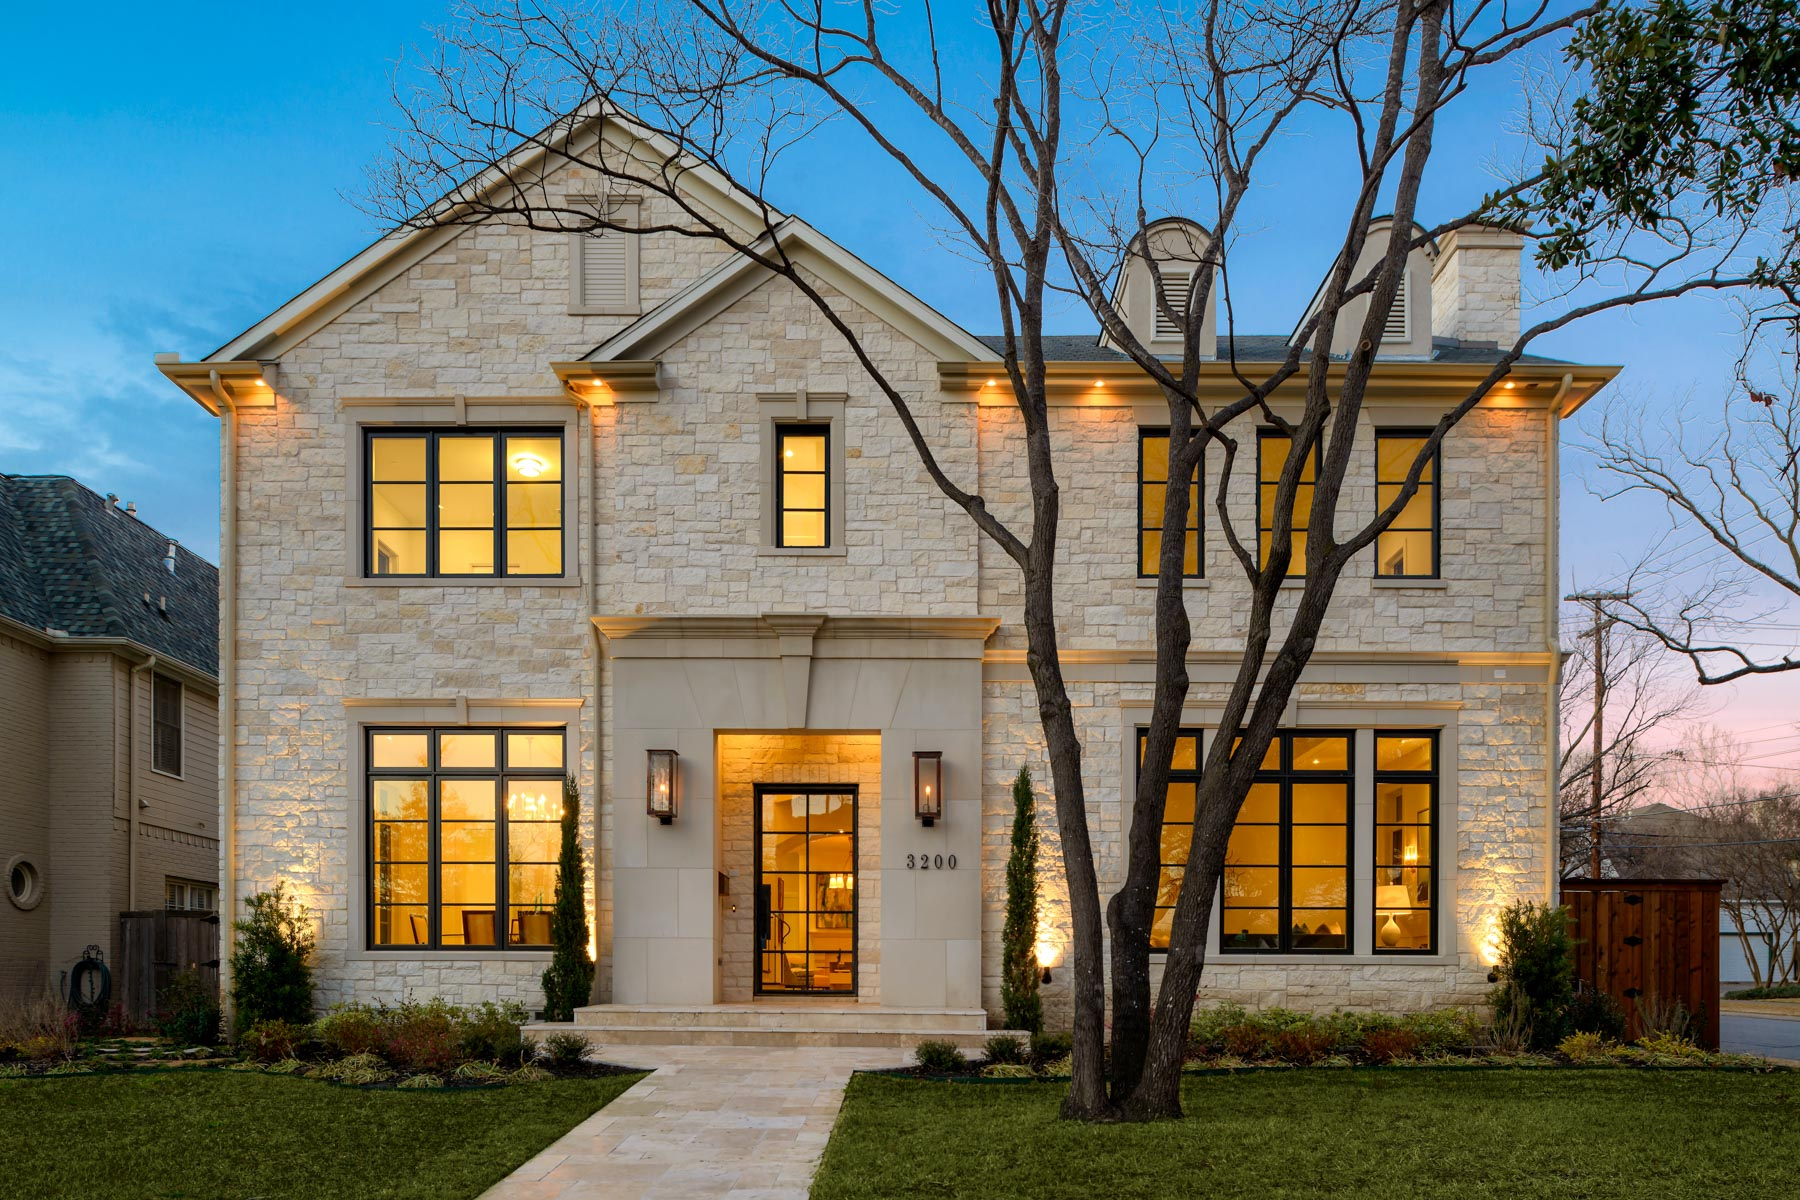 Single Family Home for Sale at Stunning University Park New Construction 3200 Purdue Dallas, Texas, 75225 United States